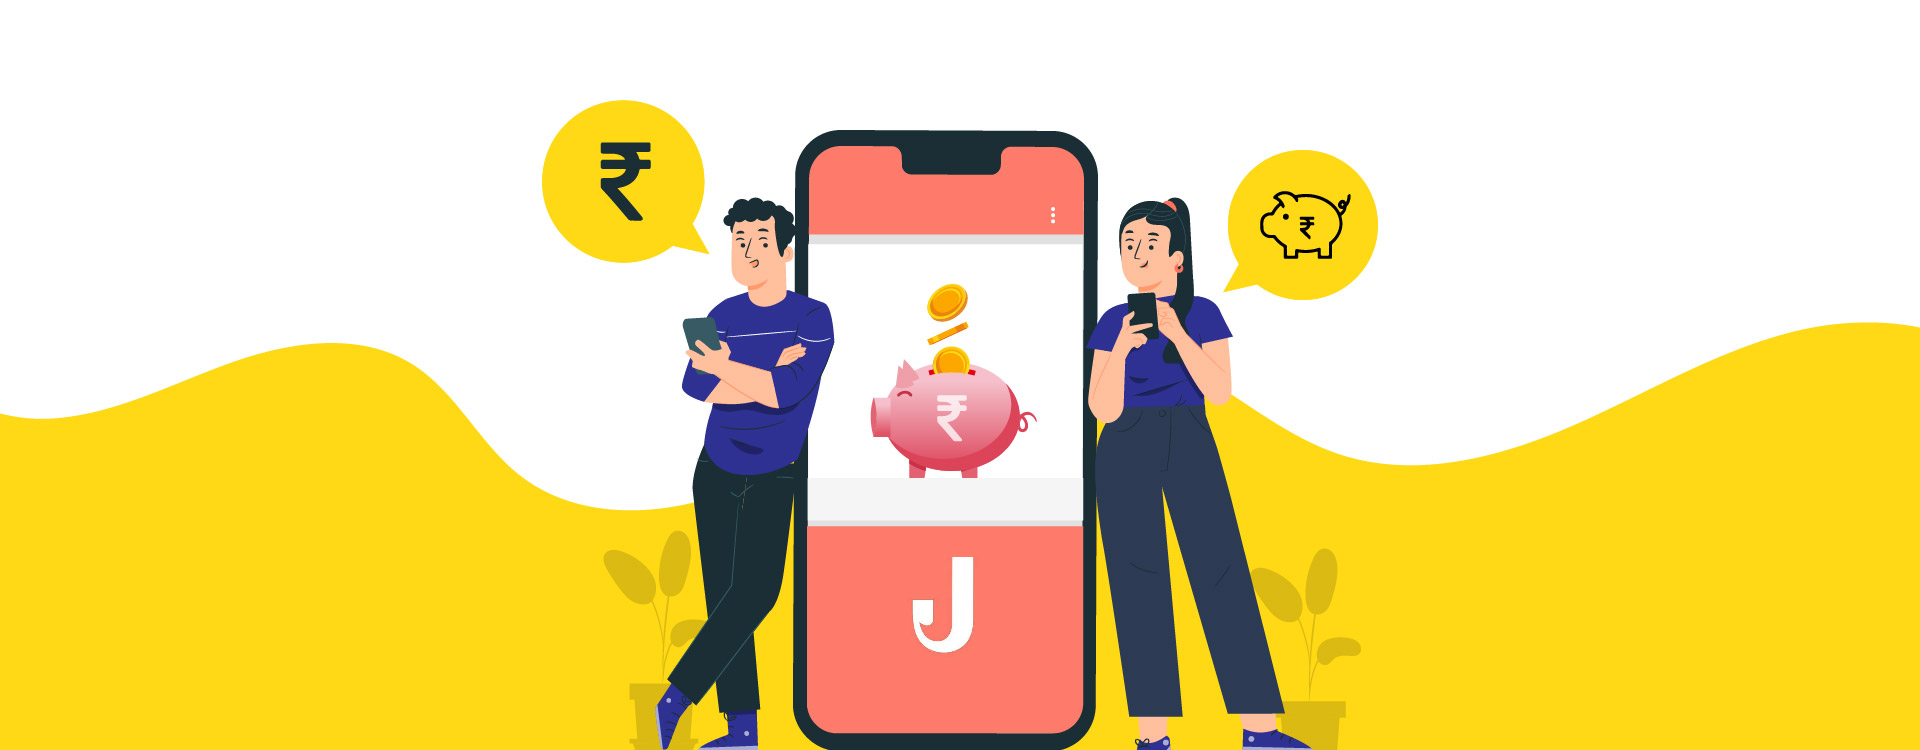 Jupiter is a new fintech app which will be a millennial's go-to-banking app.